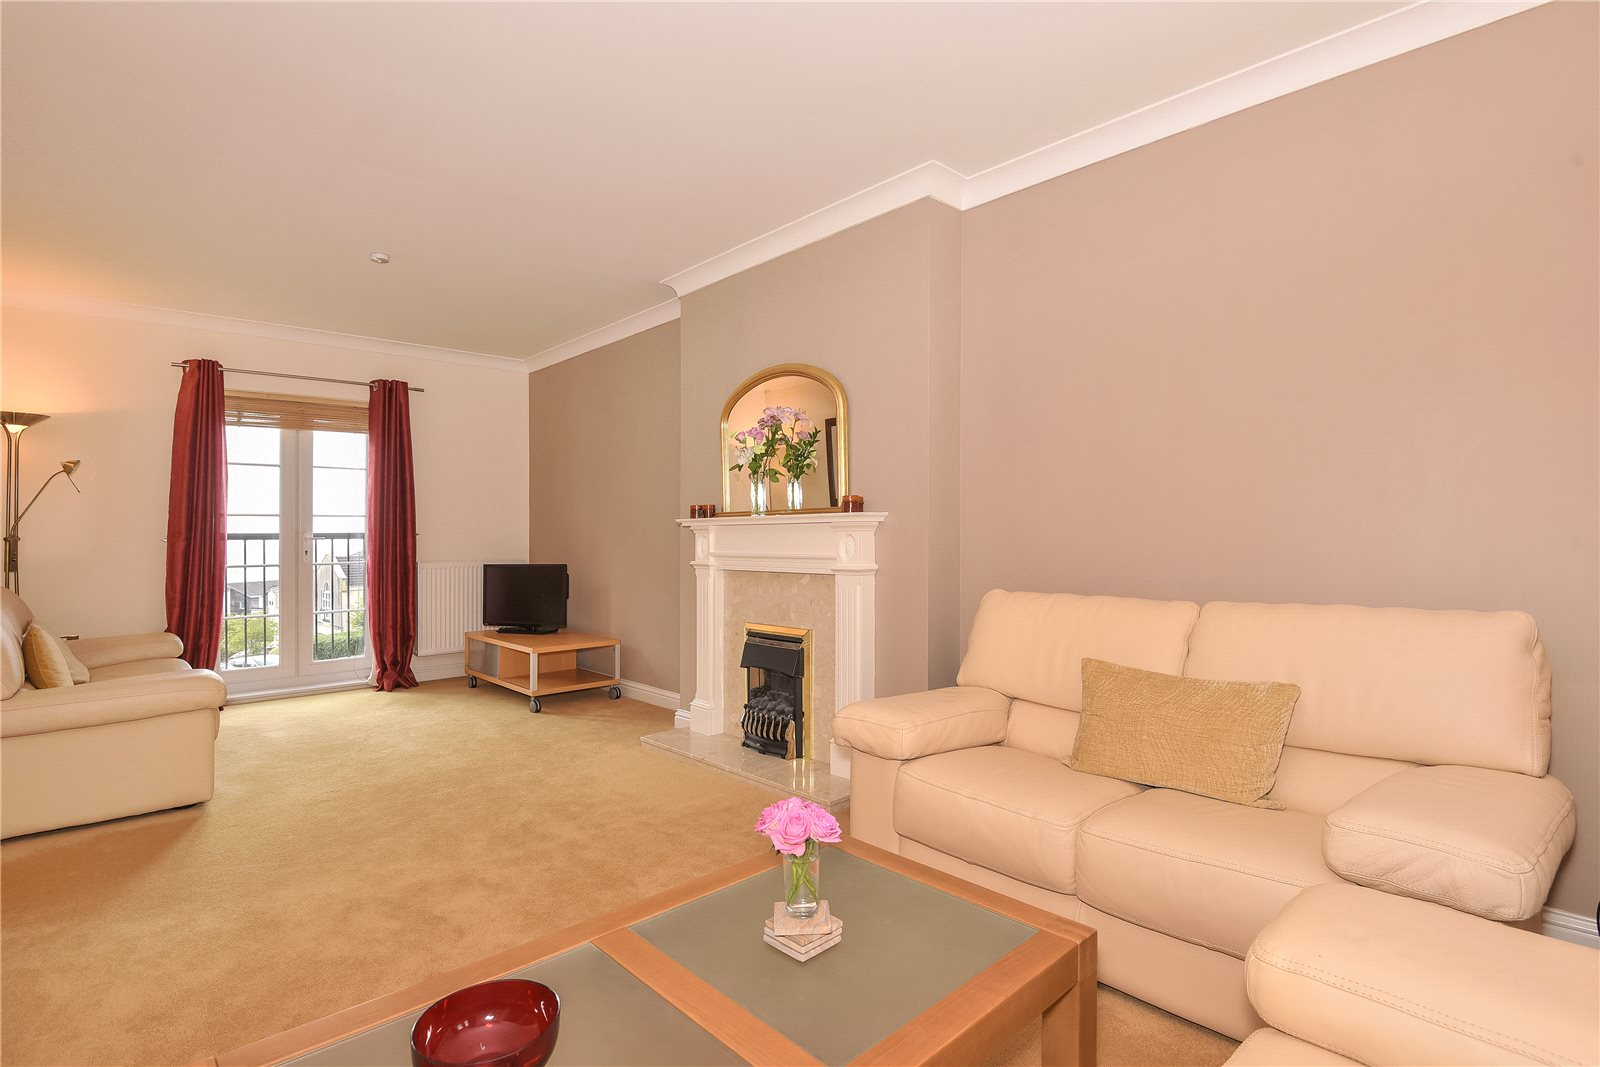 4 Bedrooms Detached House for sale in Charlcombe Rise Portishead Bristol BS20